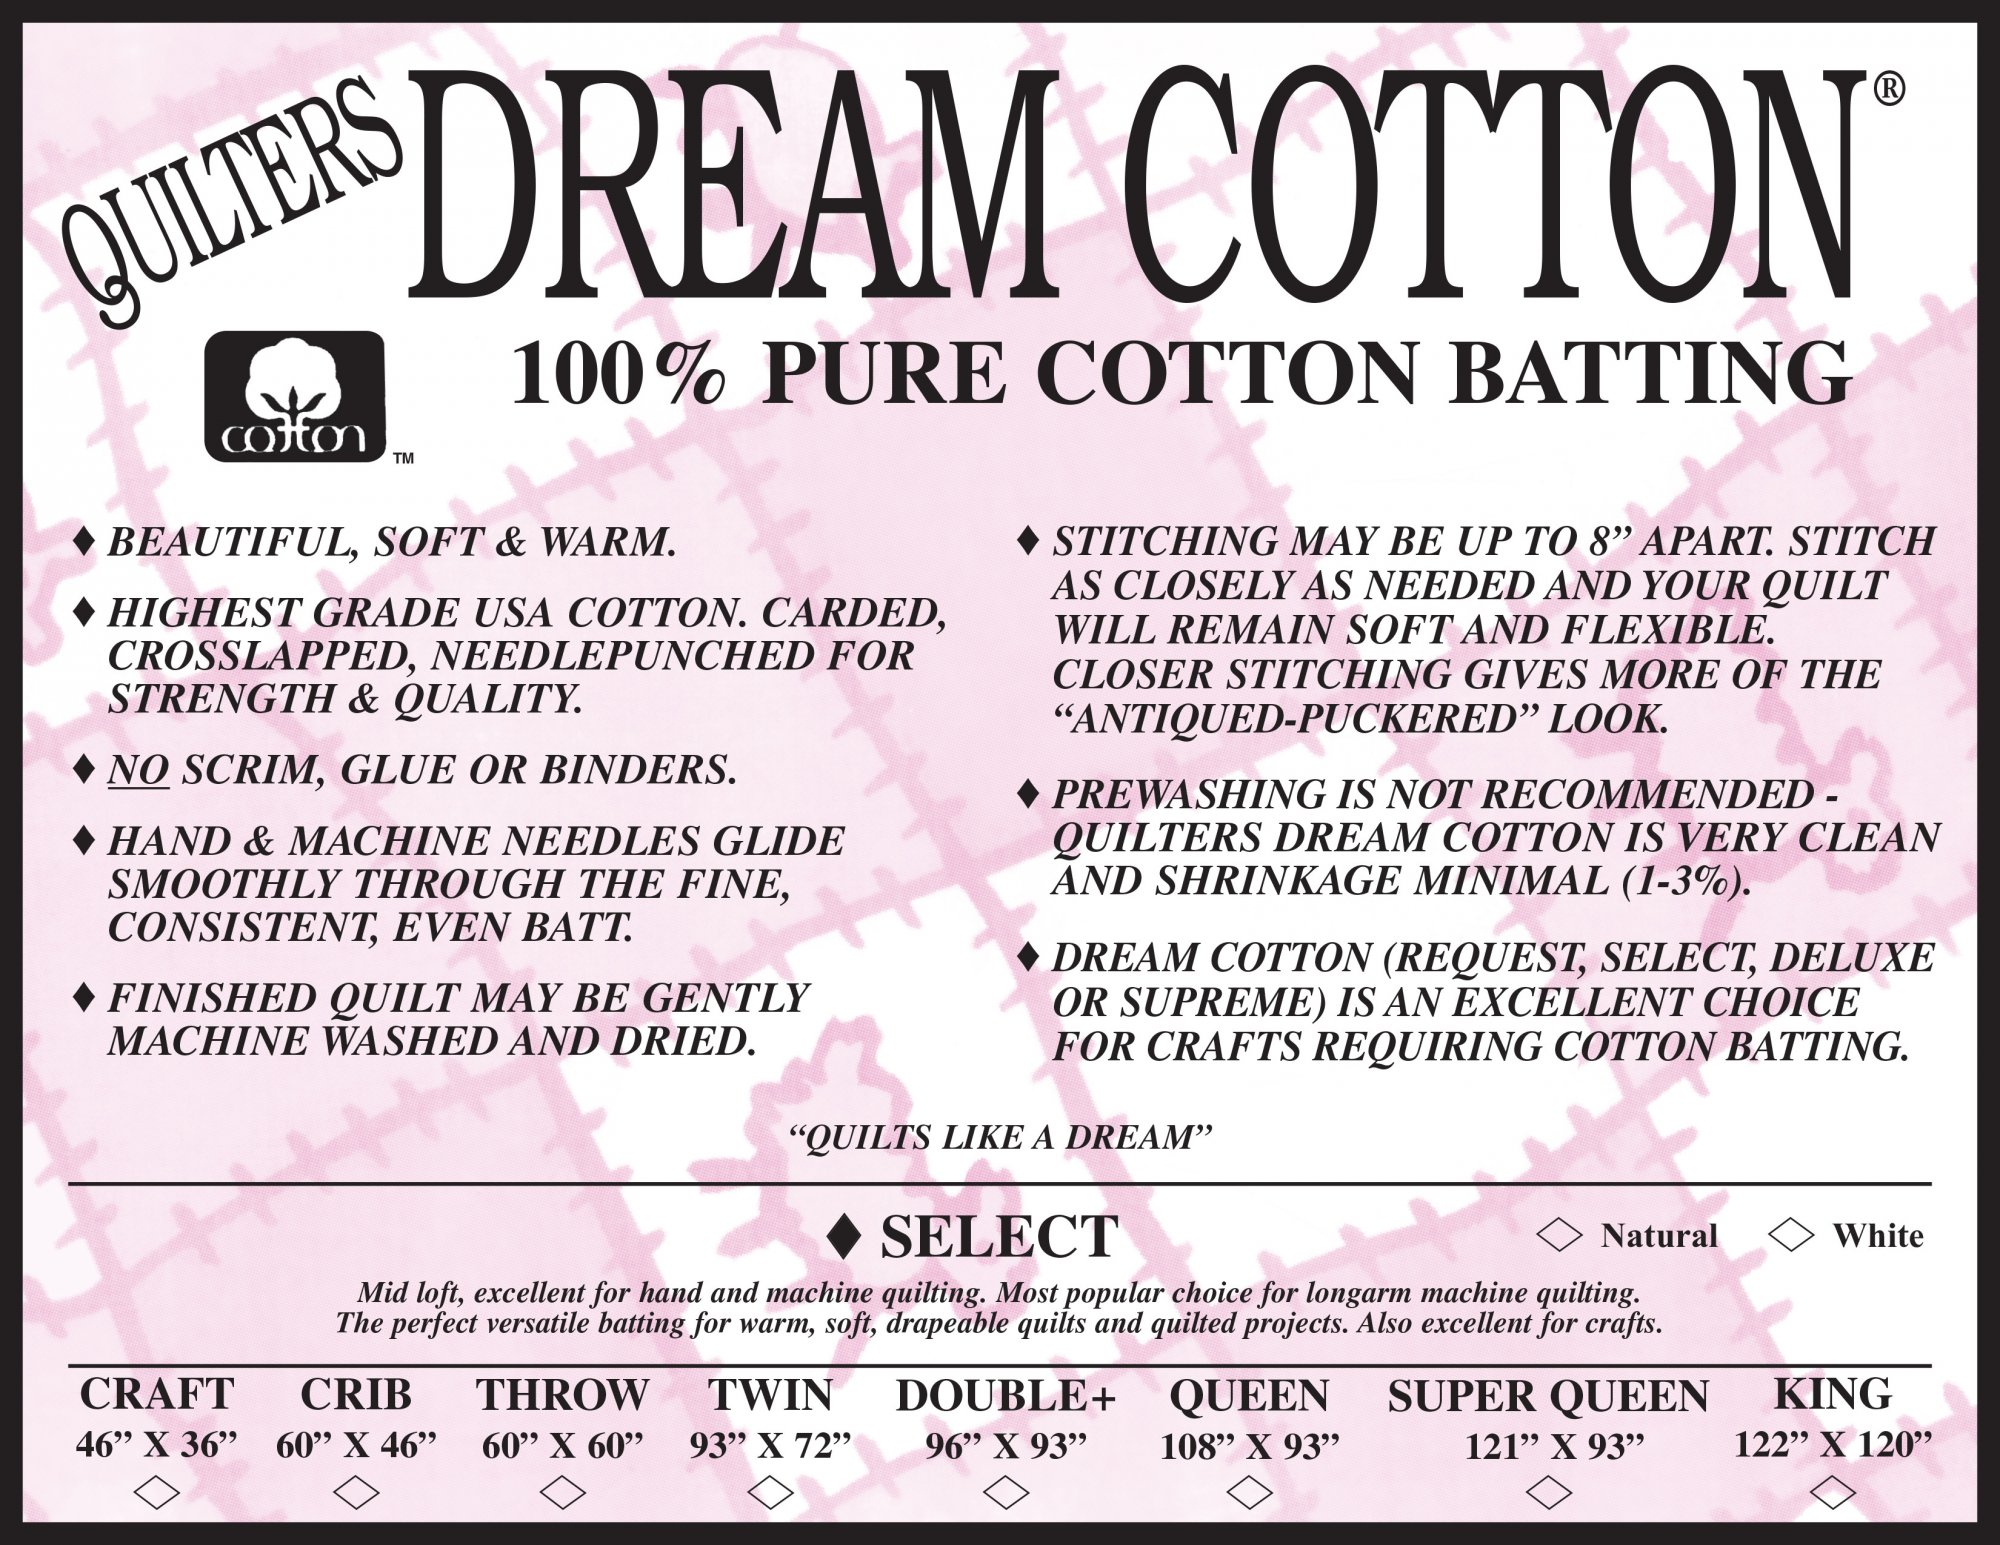 Queen Select Natural Cotton Batting